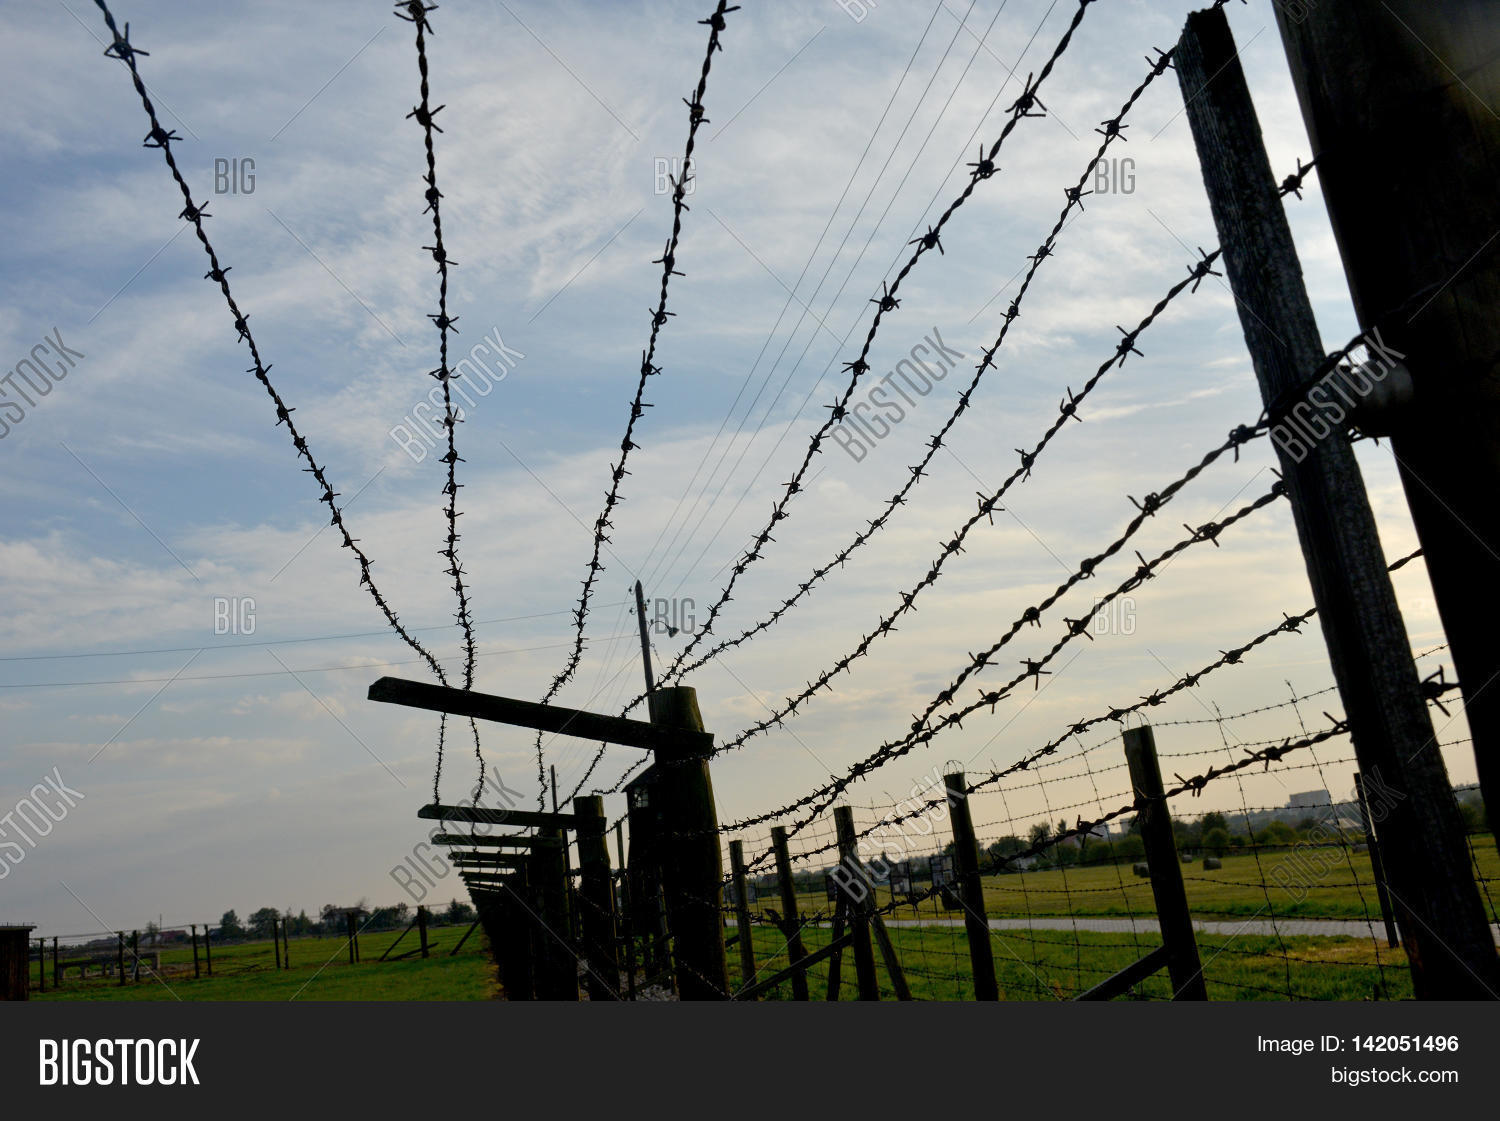 Barb-wire Fence Image & Photo (Free Trial) | Bigstock